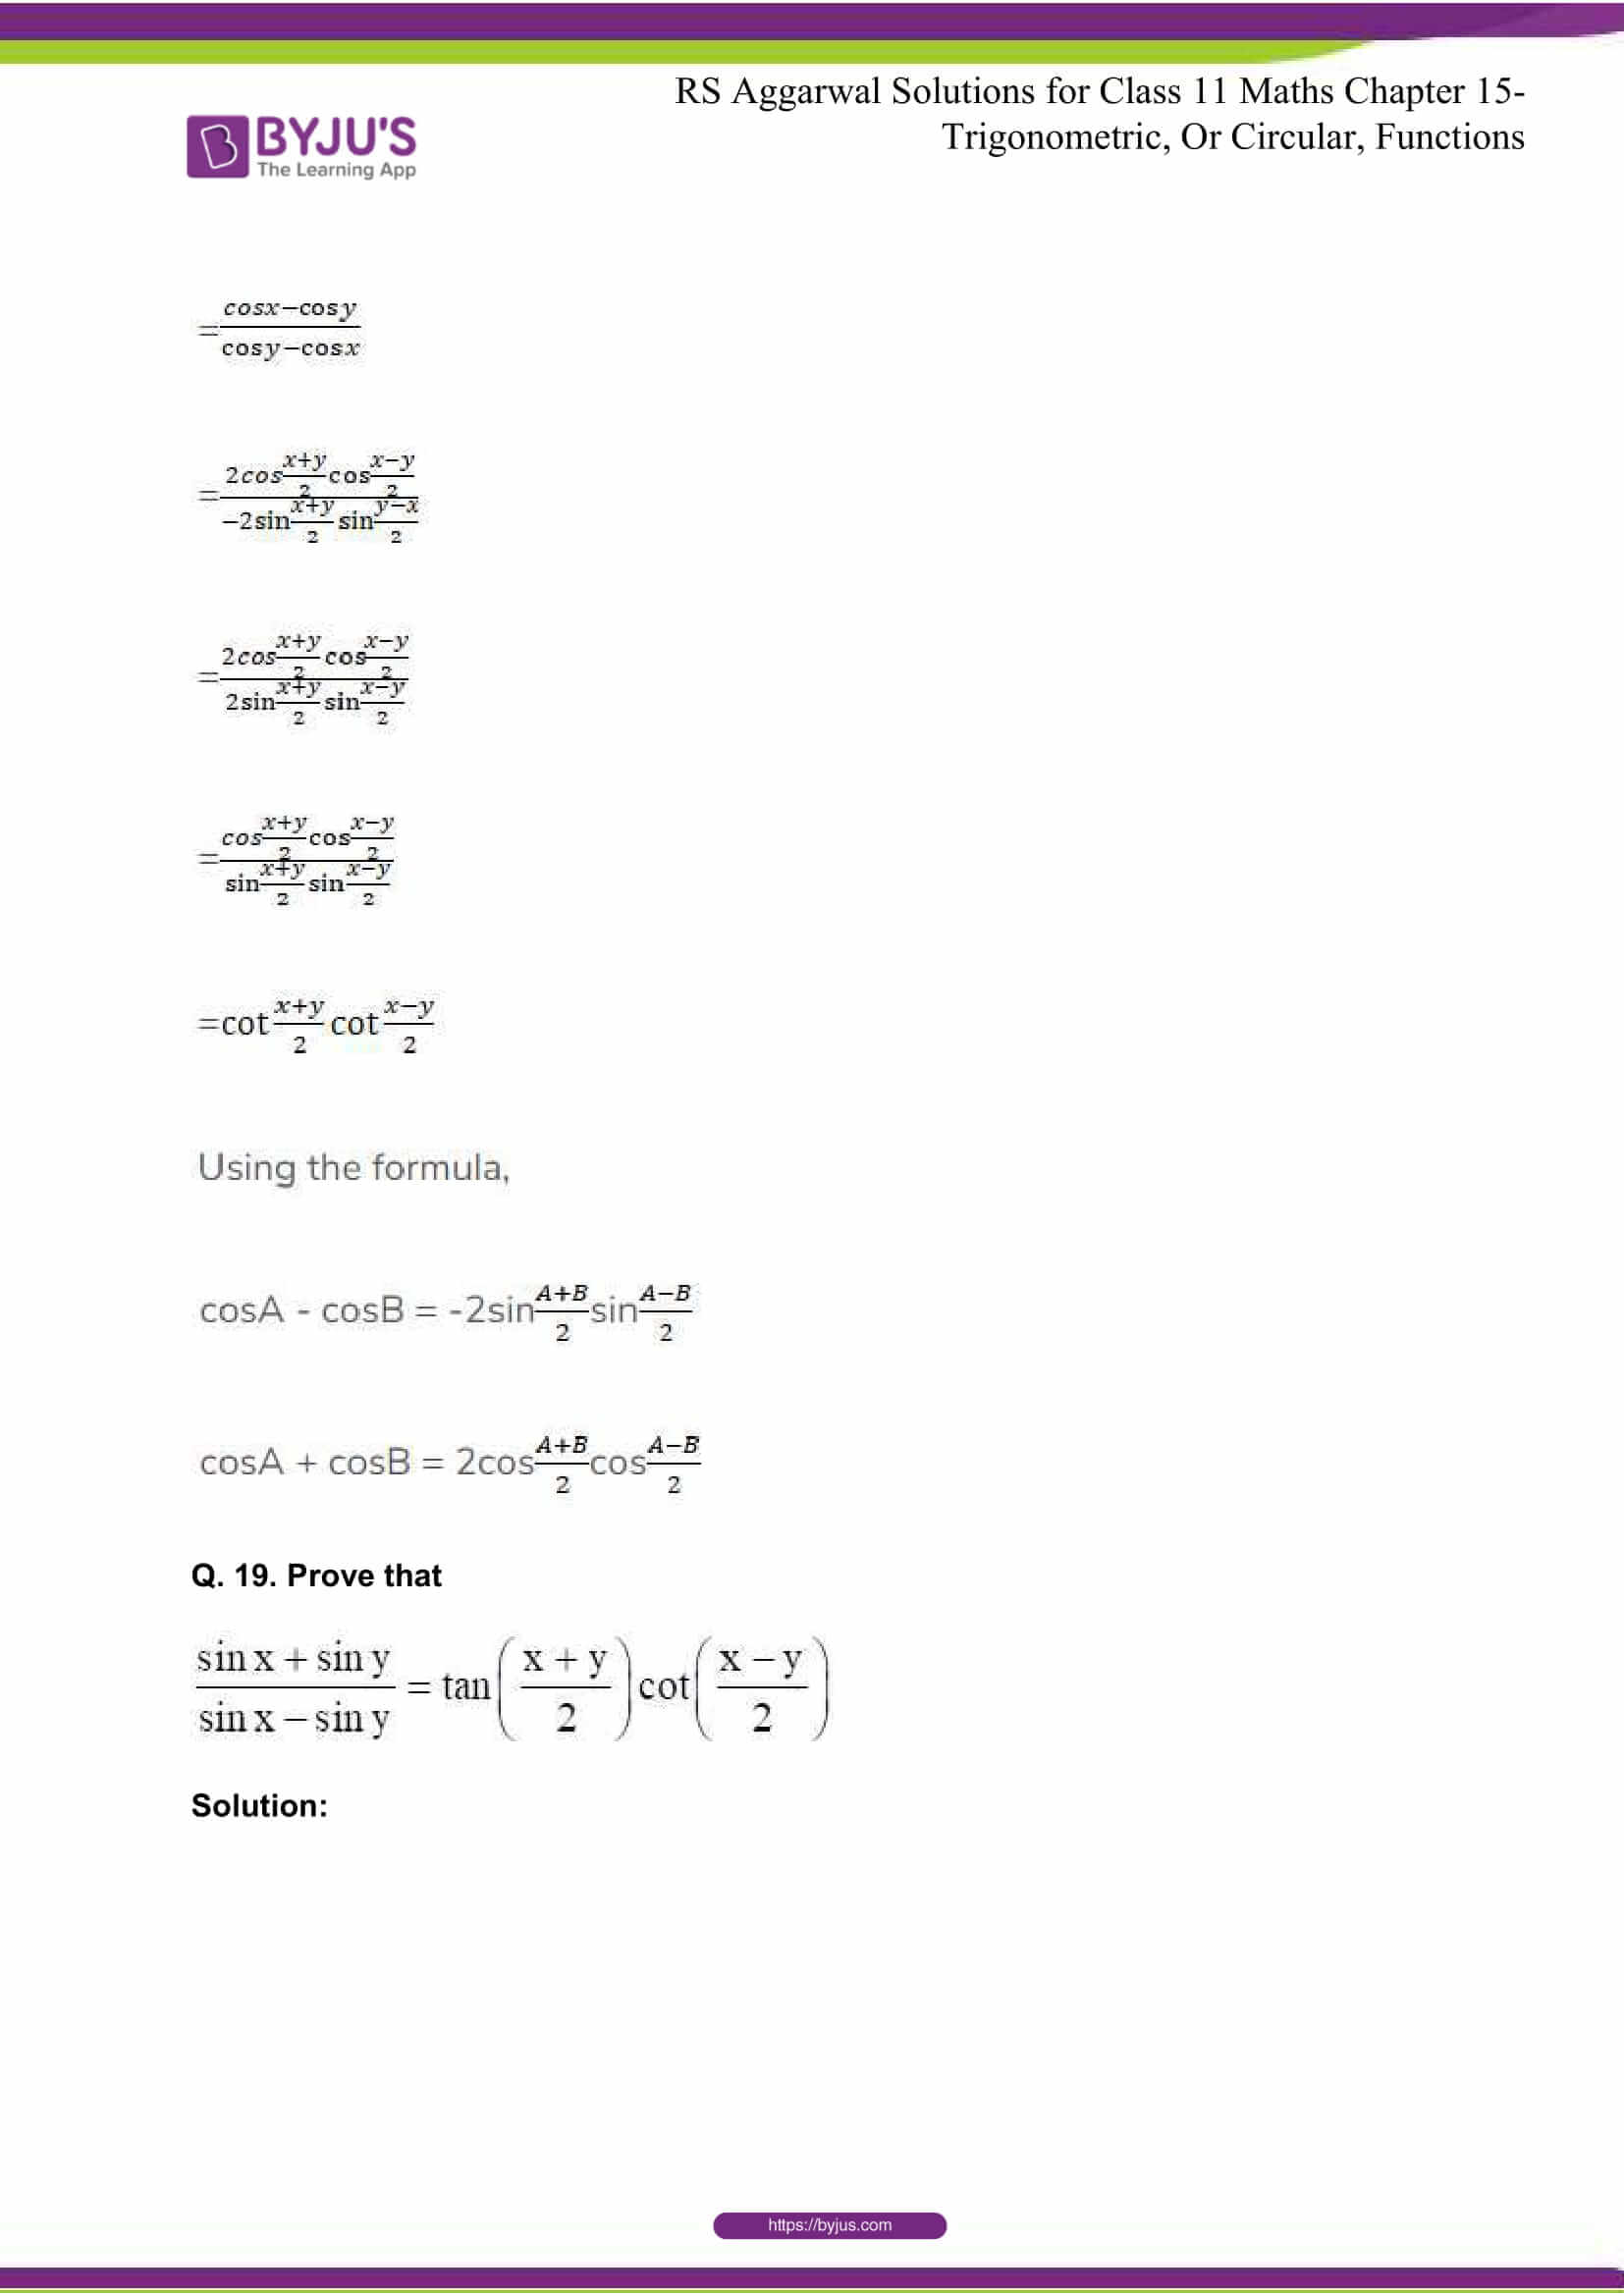 rsaggarwal solutions class 11 maths chapter 15 066